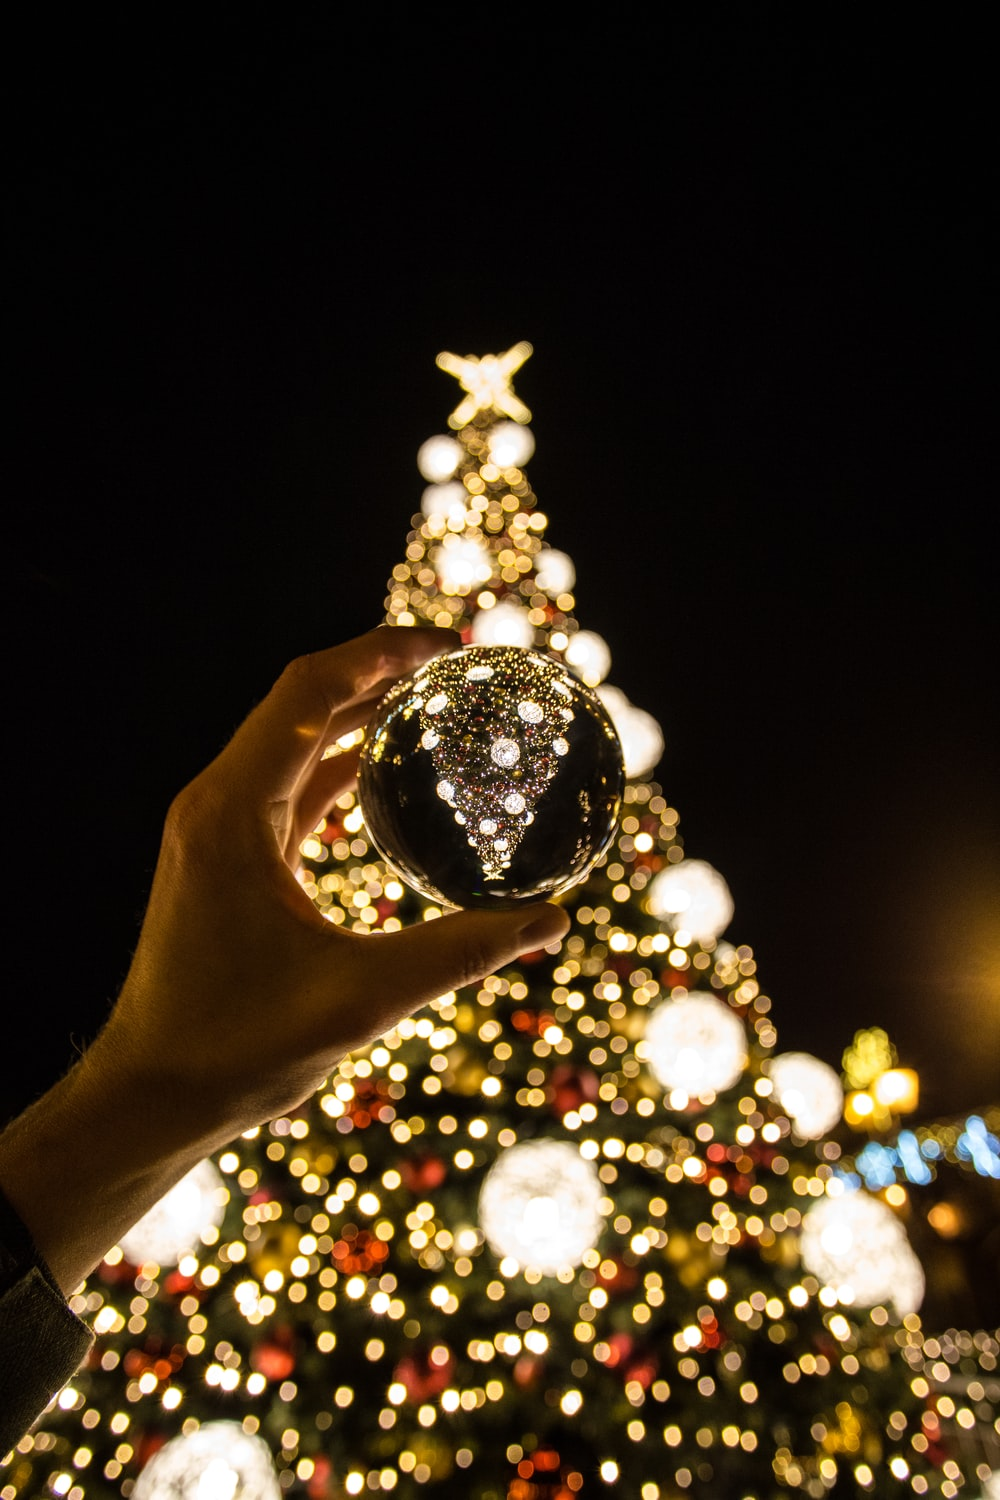 person lifting bauble near Christmas tree